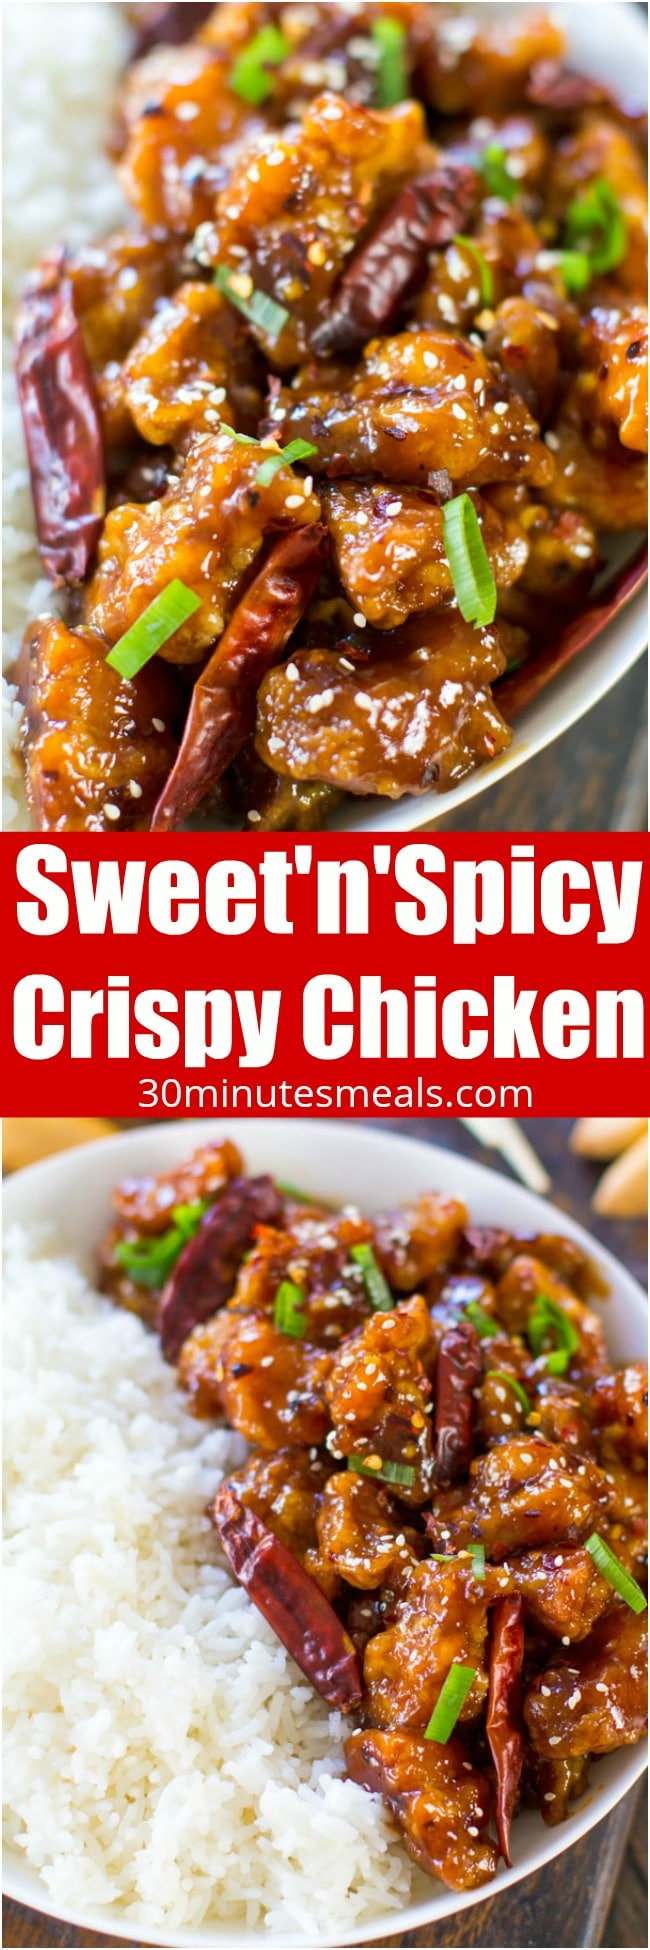 Sweet and Spicy Chicken is perfectly crispy and coated in the most delicious, sweet, sticky and spicy sauce. Made in 30 minutes only!